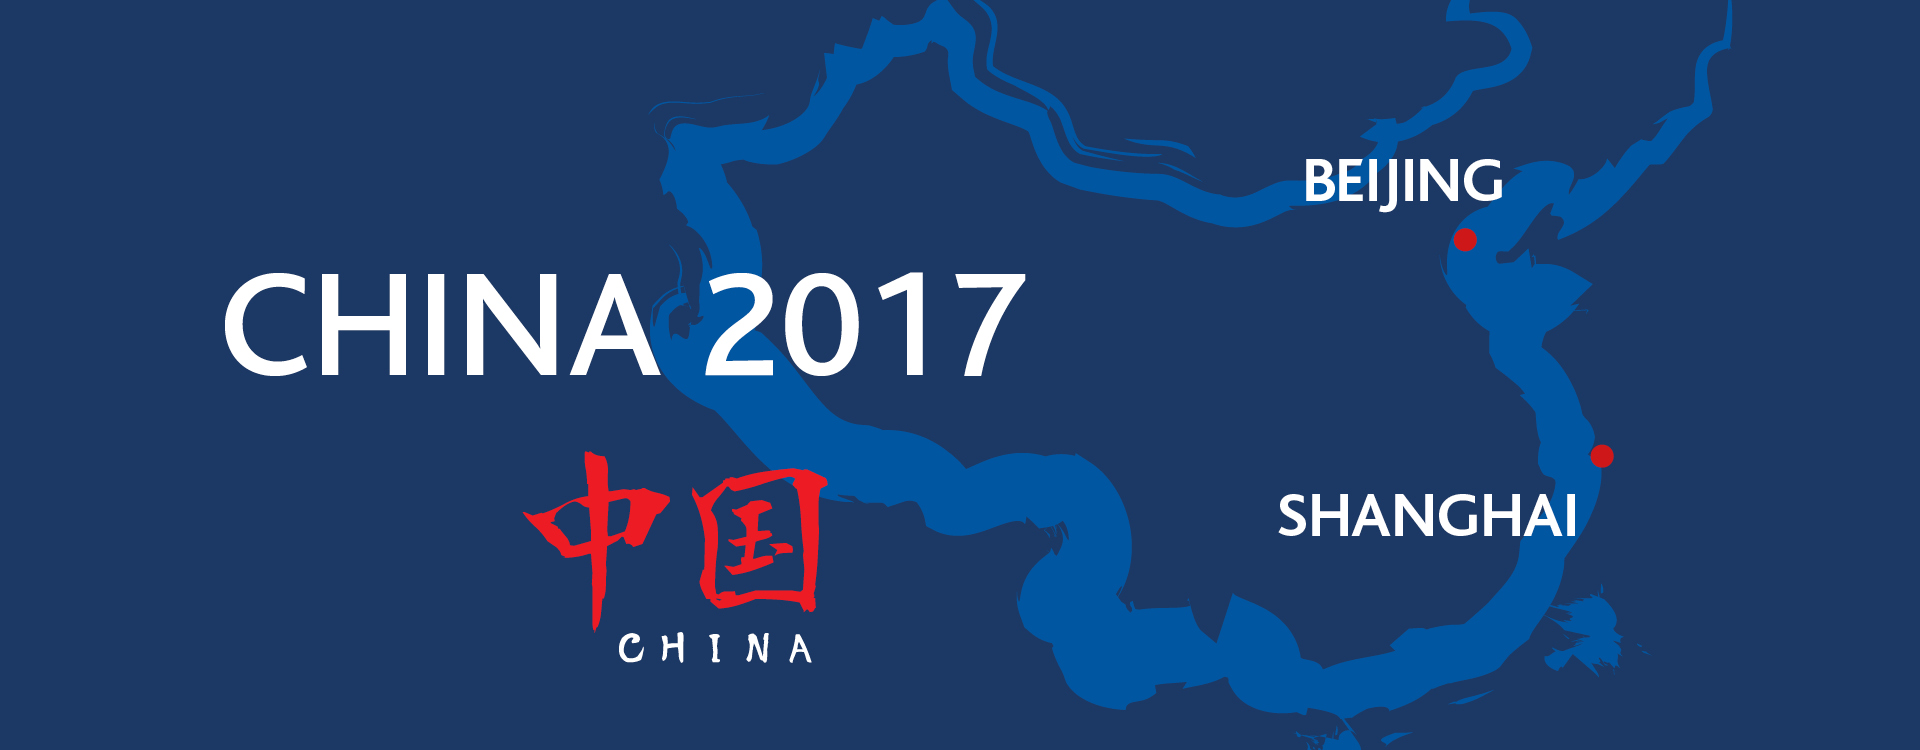 Luxembourg for Finance - China Mission 2017